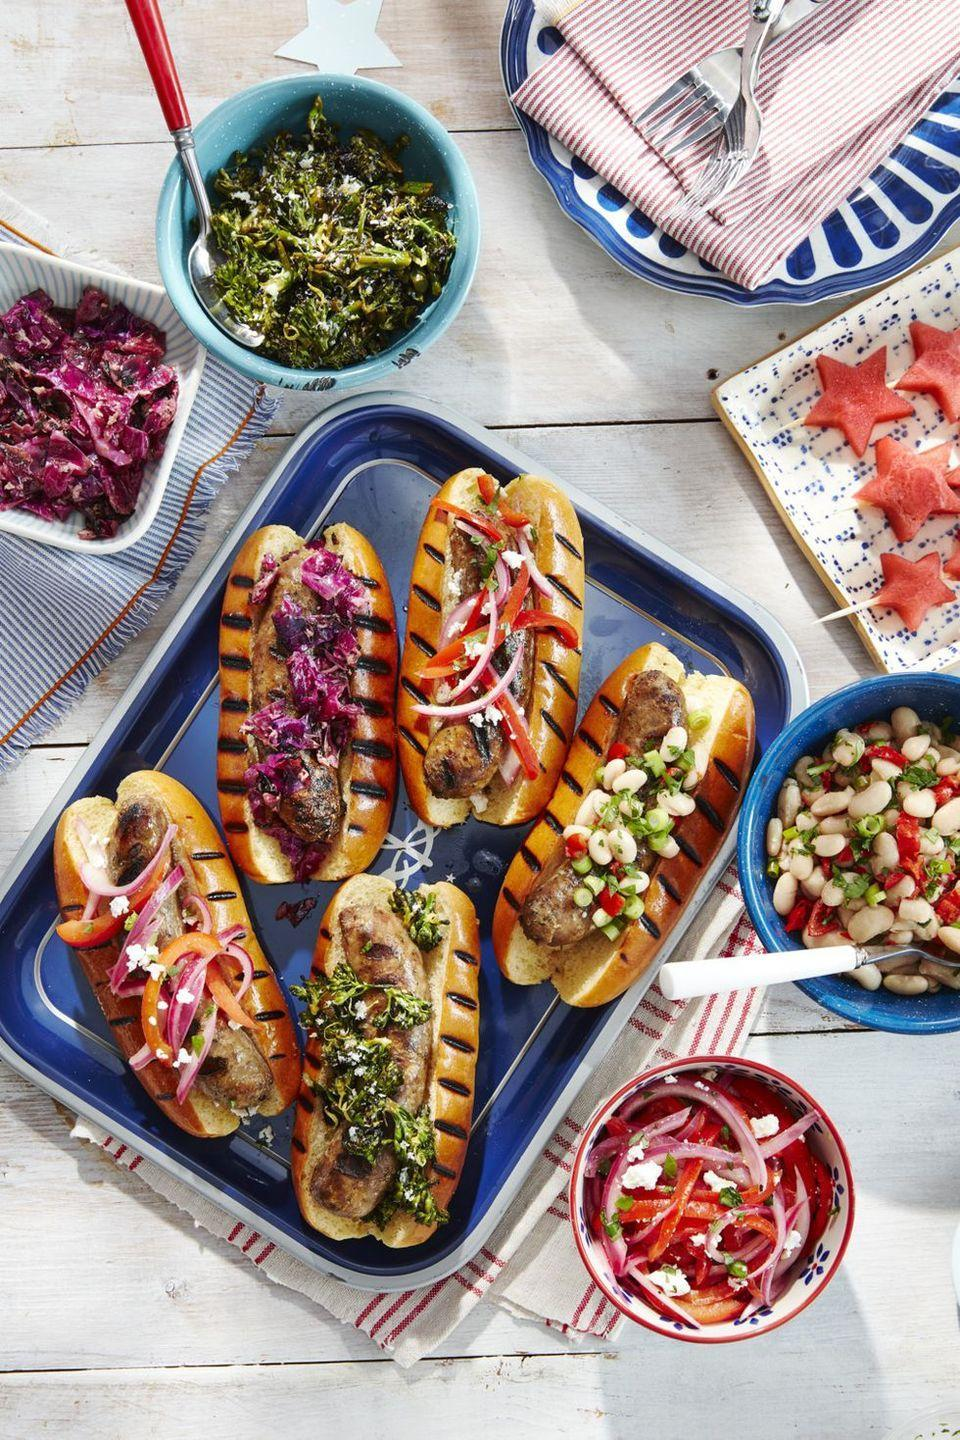 """<p>It's not a holiday barbecue without some grilled meats. Finish off these Italian sausages with your favorite toppings.</p><p><strong><a href=""""https://www.countryliving.com/food-drinks/a28188266/grilled-sausages-recipe/"""" rel=""""nofollow noopener"""" target=""""_blank"""" data-ylk=""""slk:Get the recipe"""" class=""""link rapid-noclick-resp"""">Get the recipe</a>.</strong> </p>"""